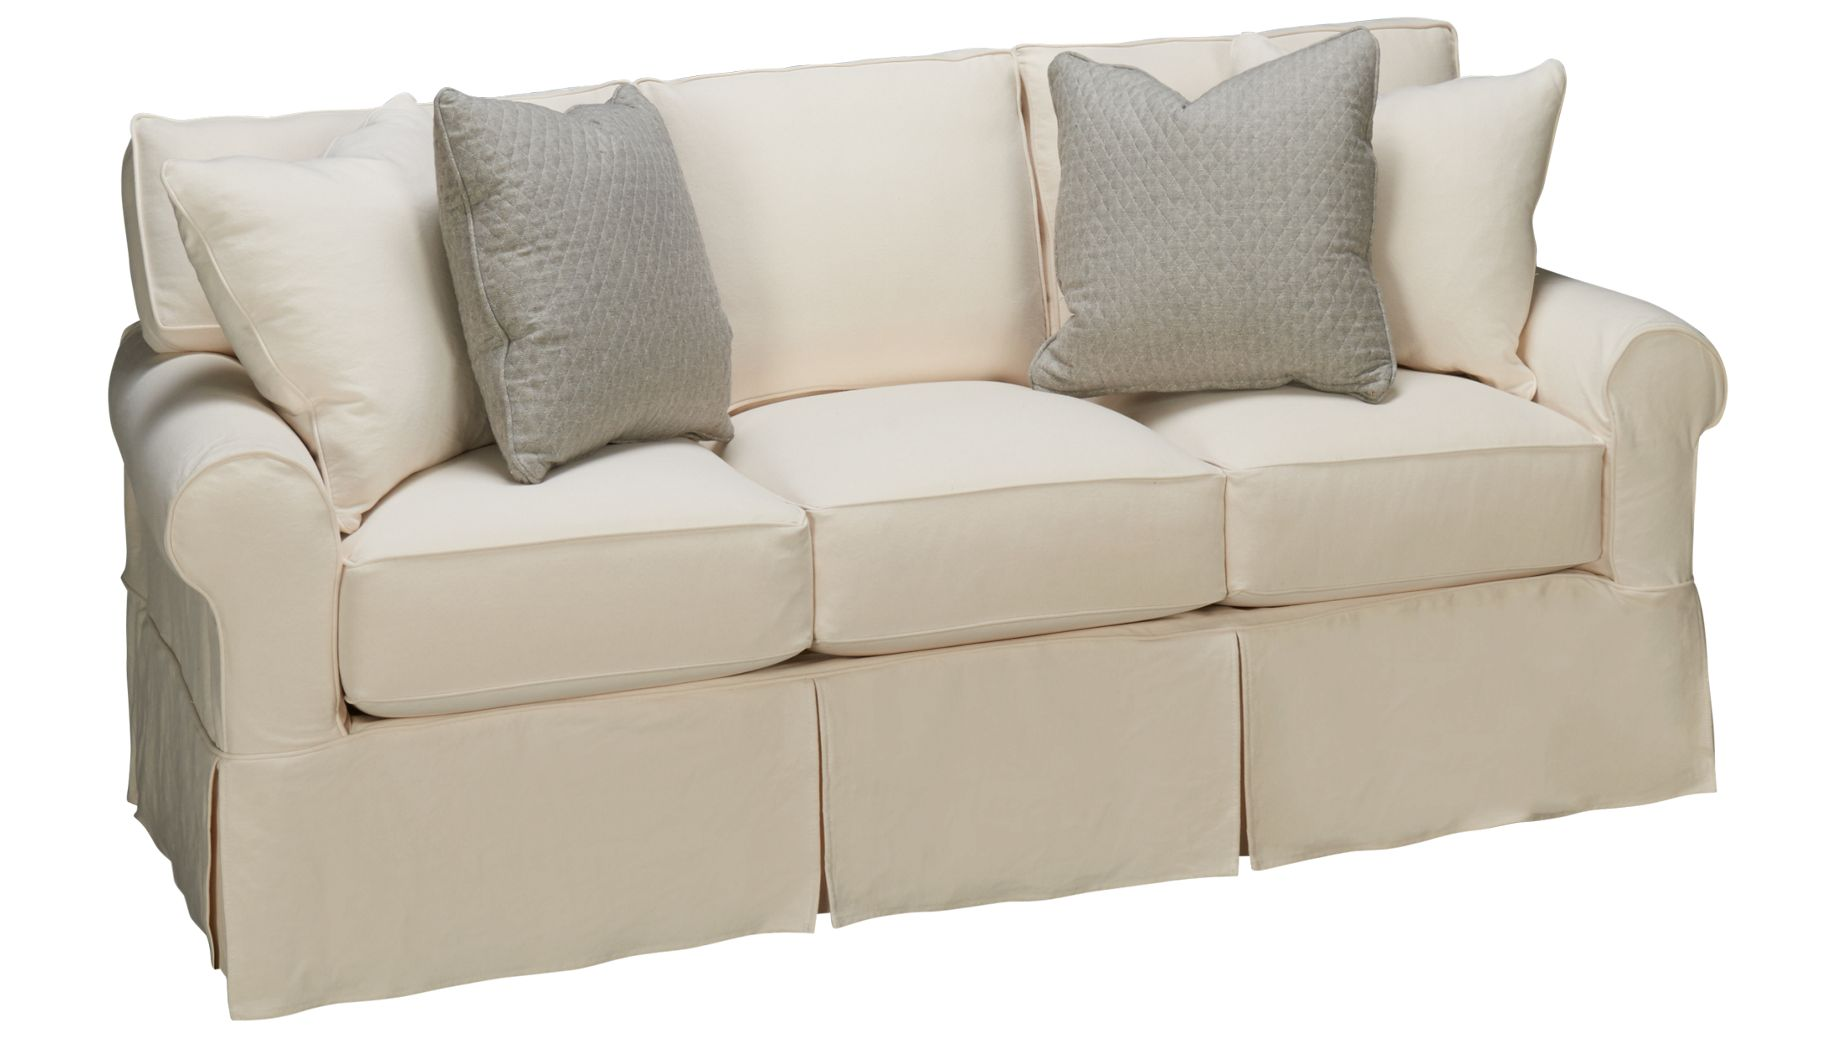 Rowe Hartford Slipcover Sofa Mjob Blog